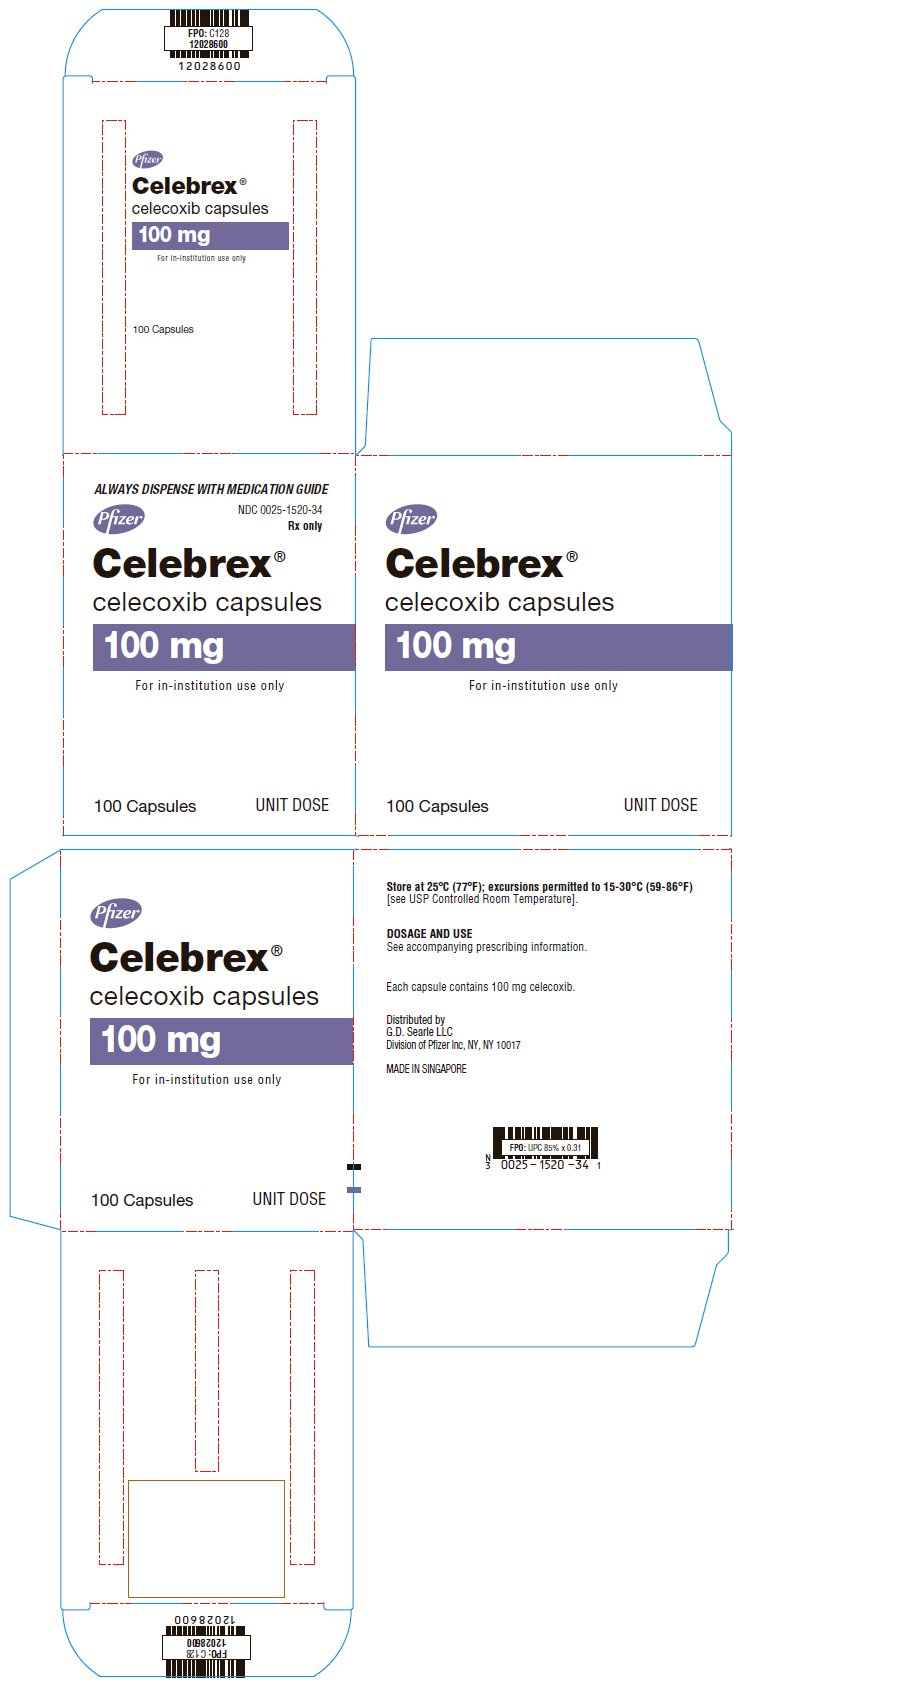 Celecoxib label 04.jpg